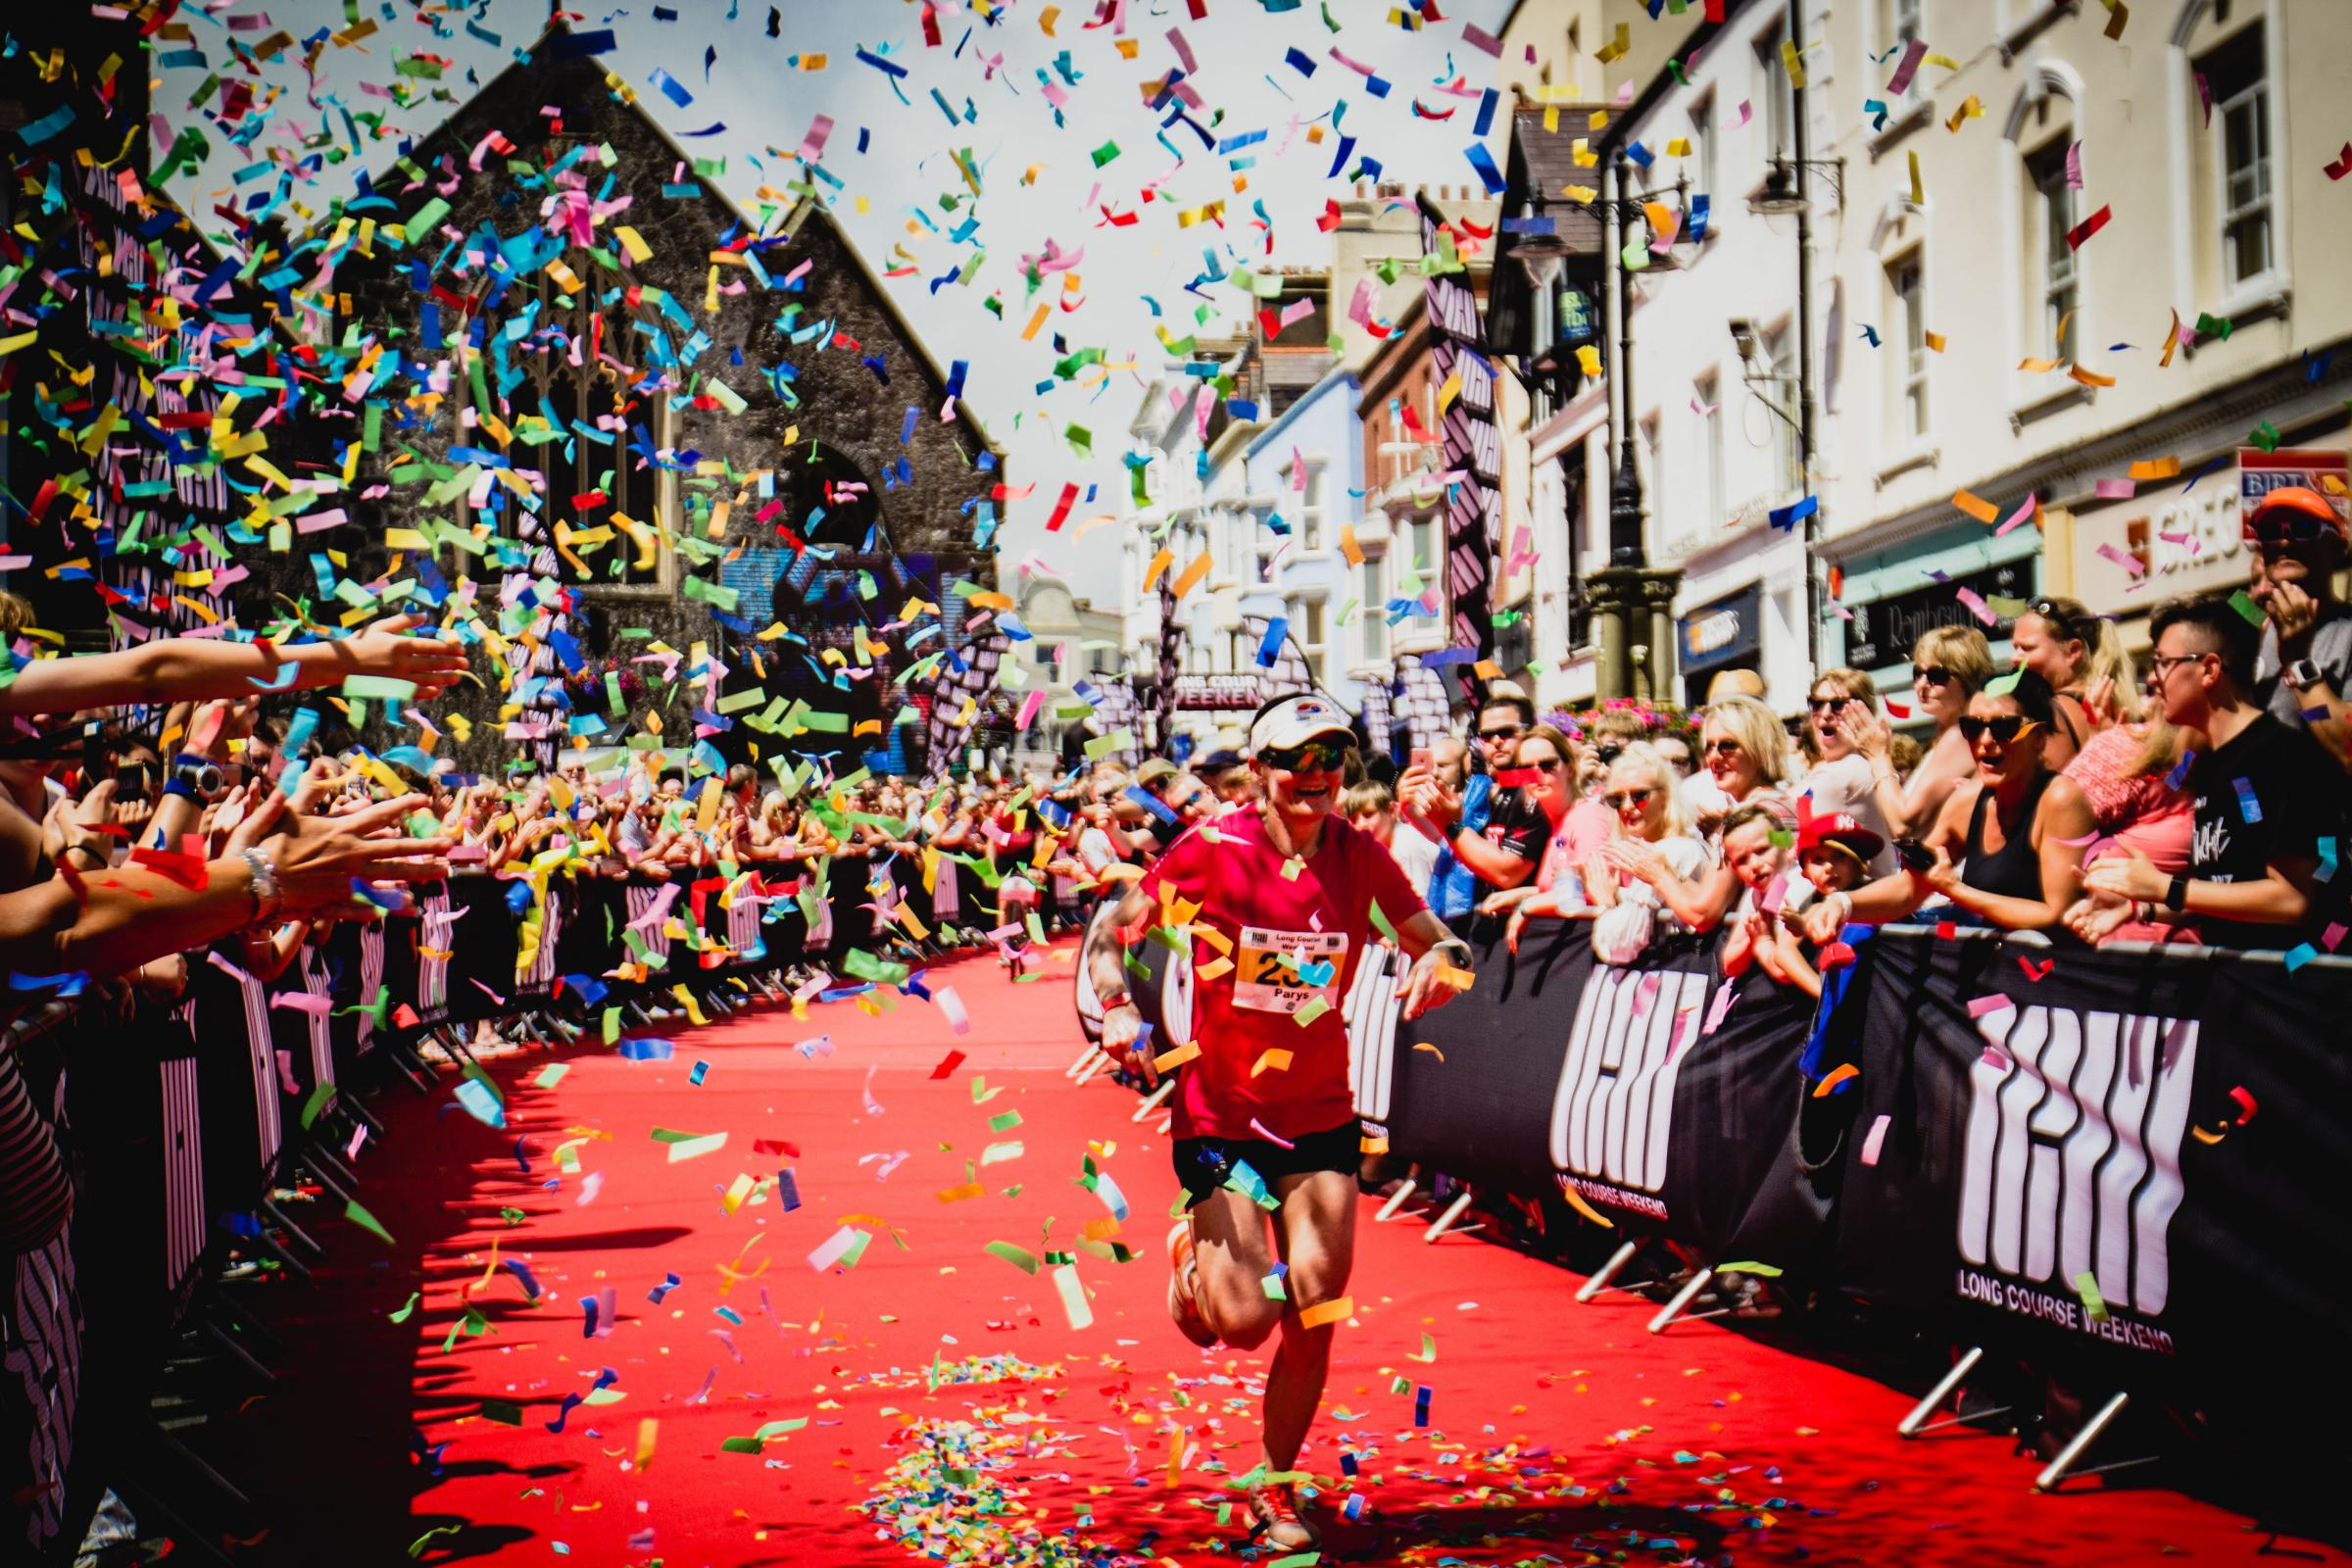 The red carpet finish in Tenby's Tudor Square is a legendary feature of the Long Course Weekend.